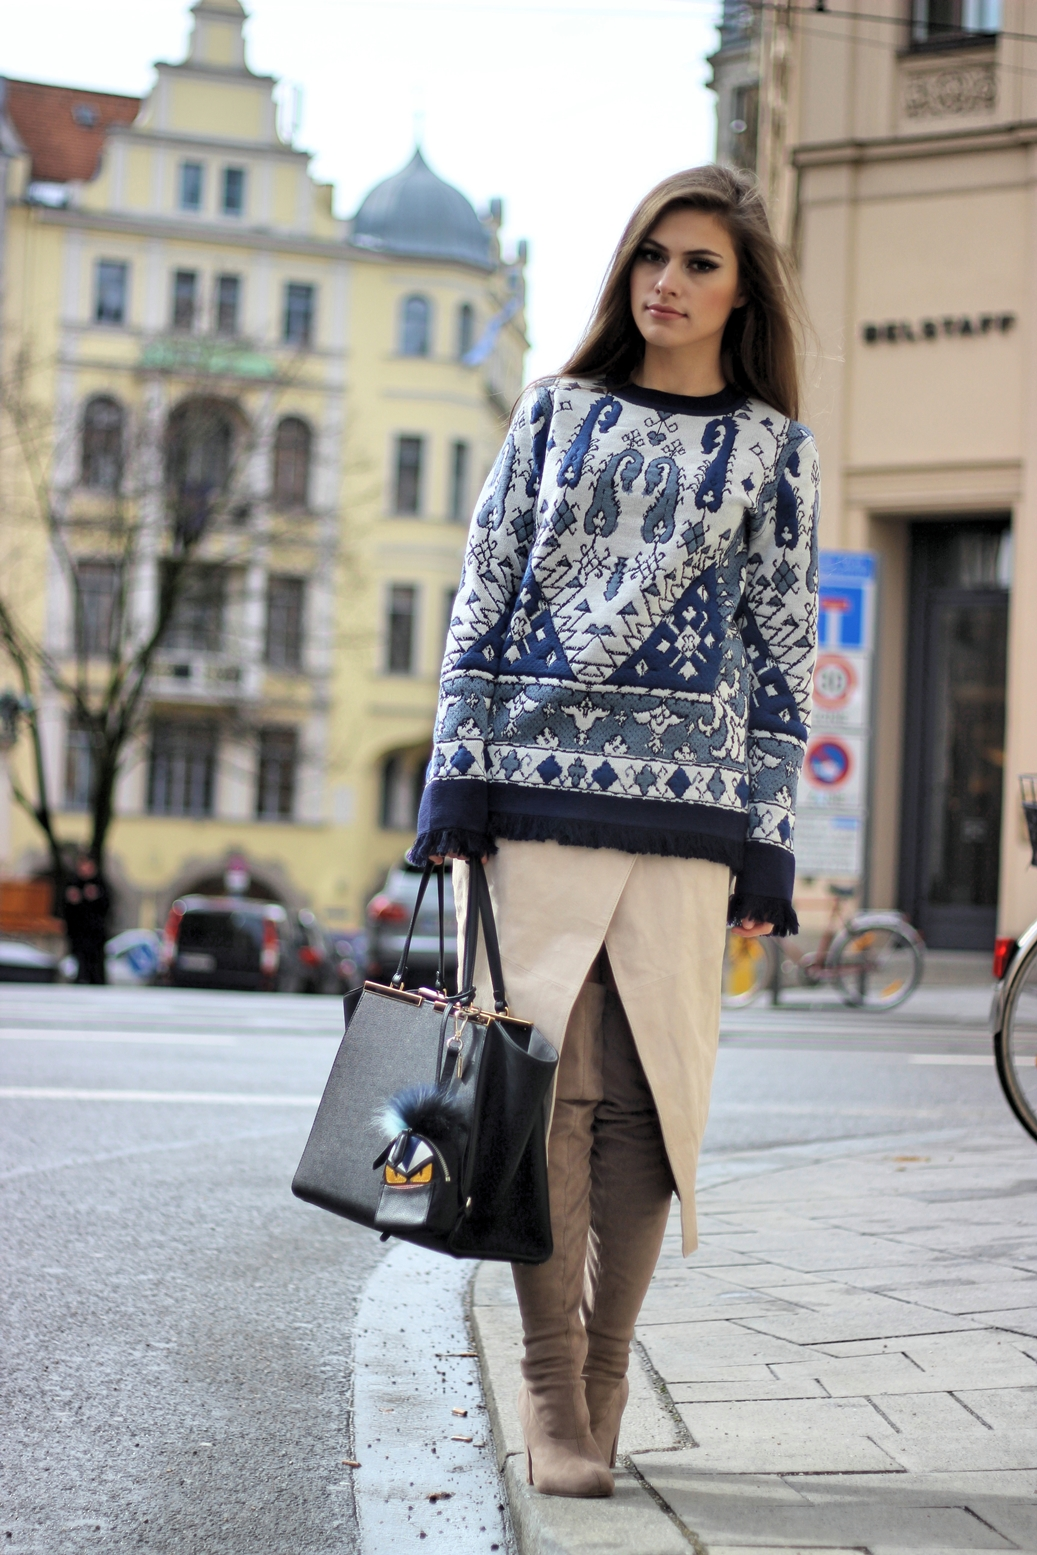 tory-burch-fendi-streetstyle-germany-europe-blog